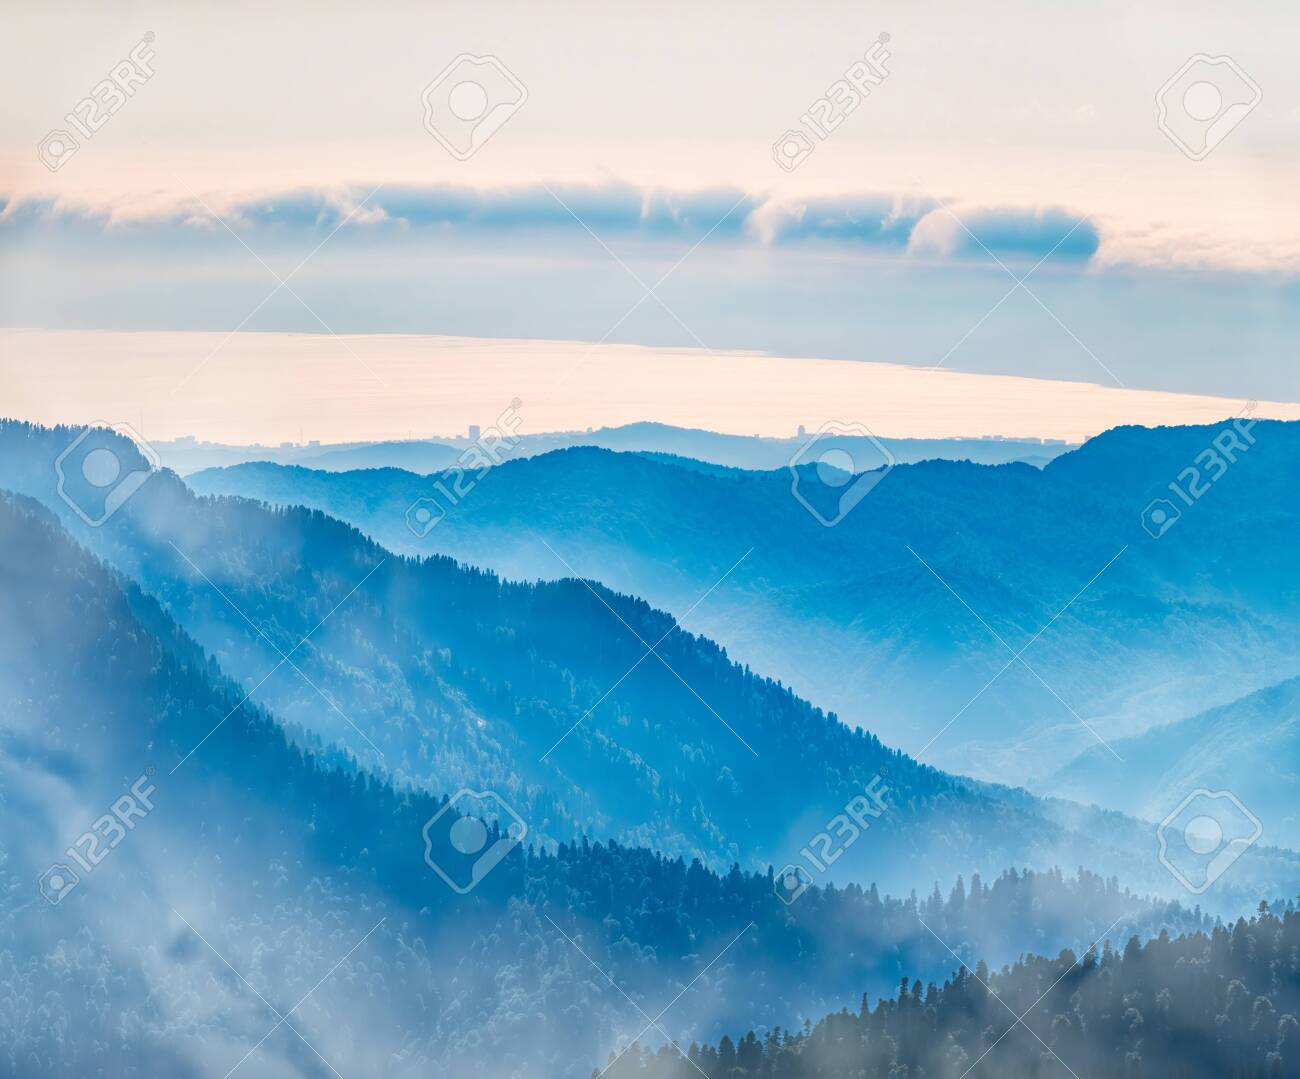 Green mountain slope. Layers of mountains in the haze during sunset. Multilayered misty nountains. Krasnaya Polyana, Sochi, Russia. - 144096804